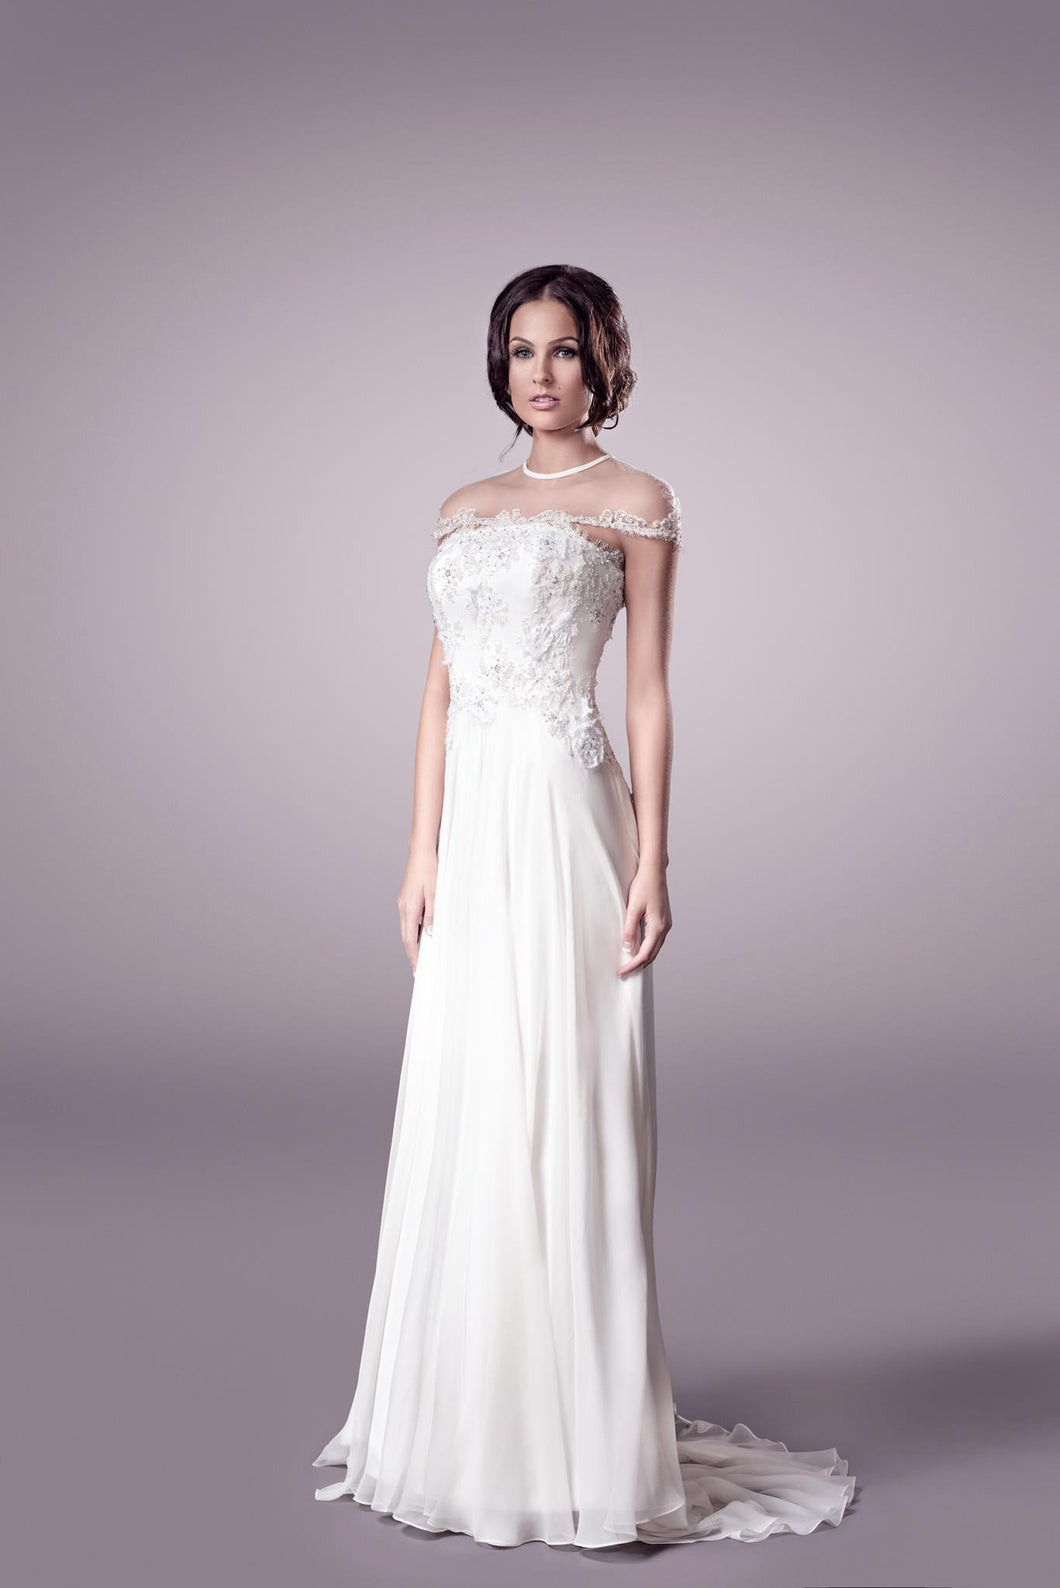 Grace wedding dress bridal gown Perth - 9324F